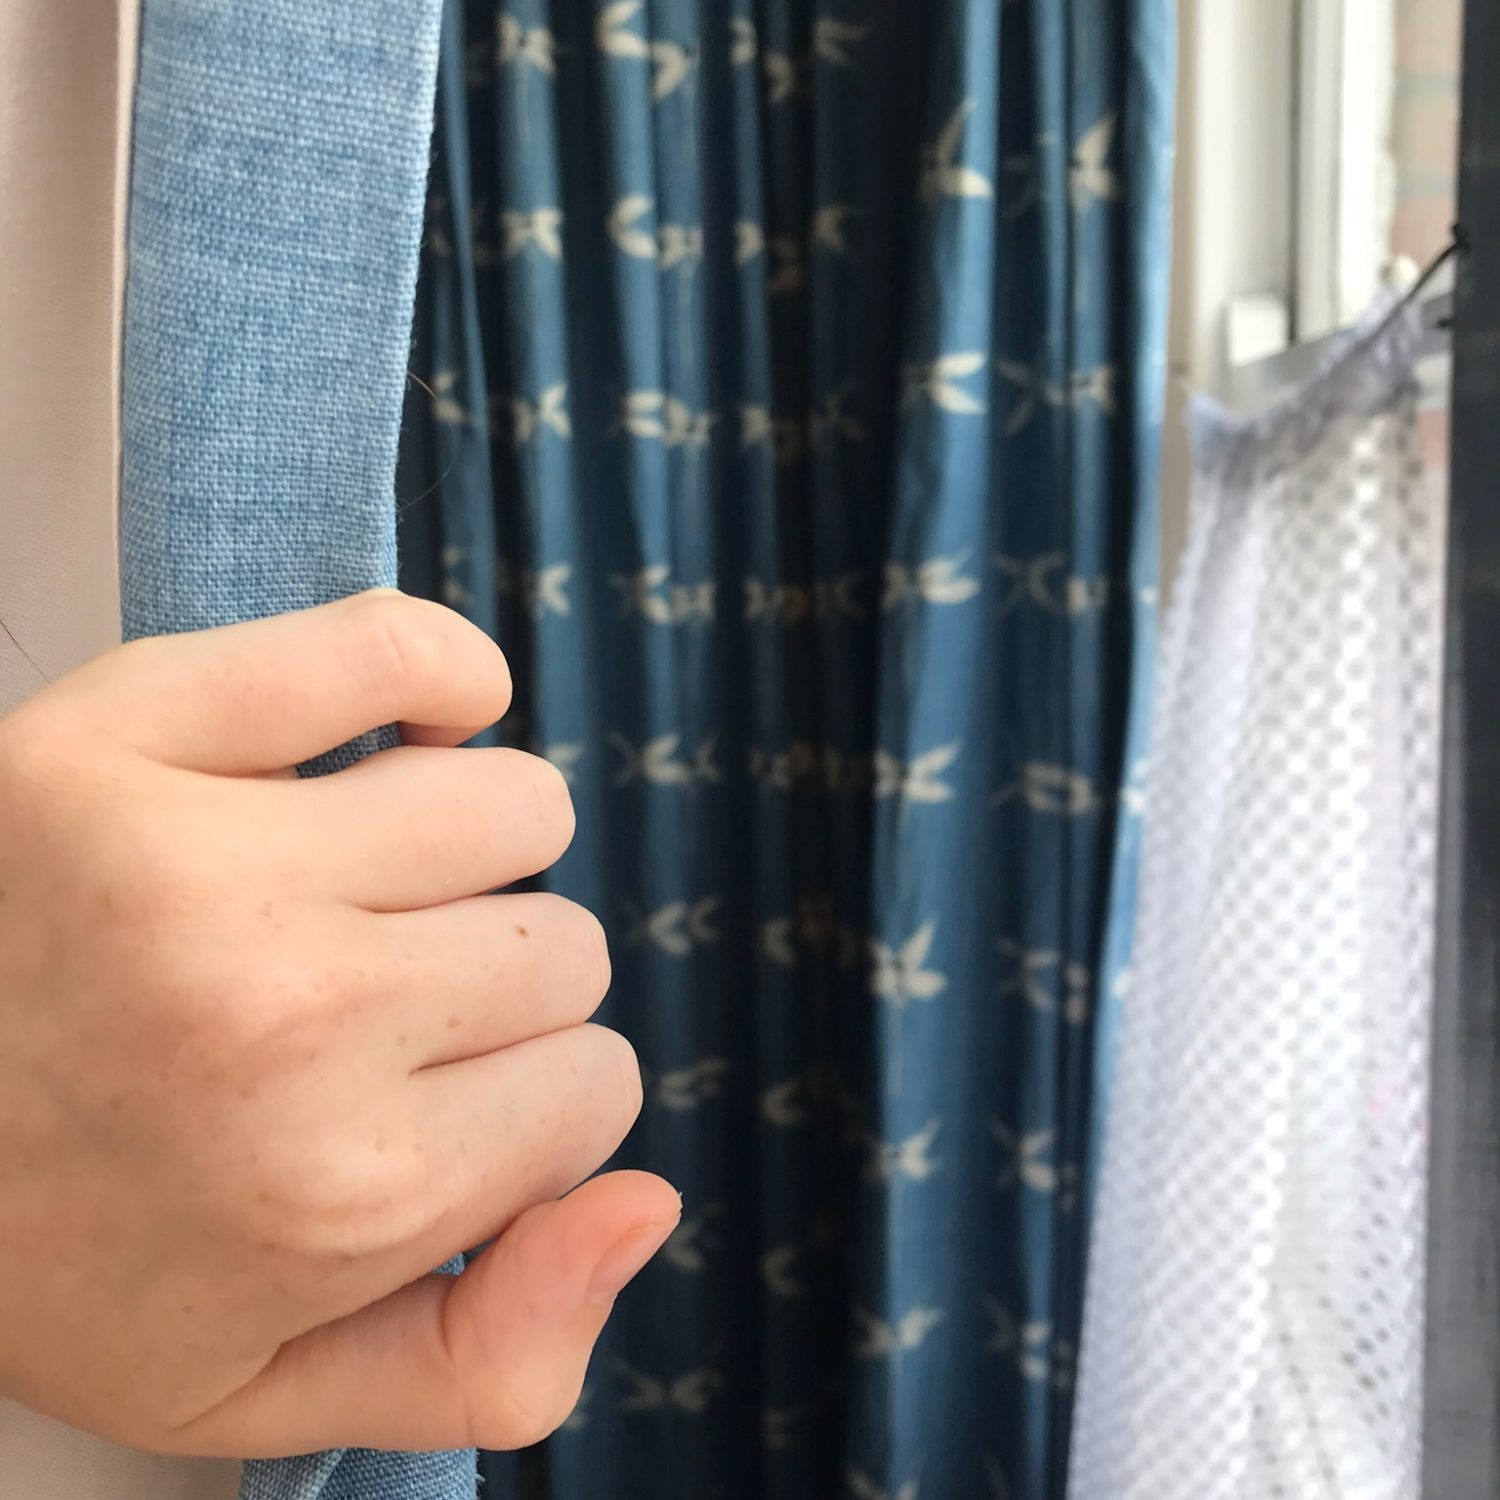 Person pulling back a curtain in hide and seek